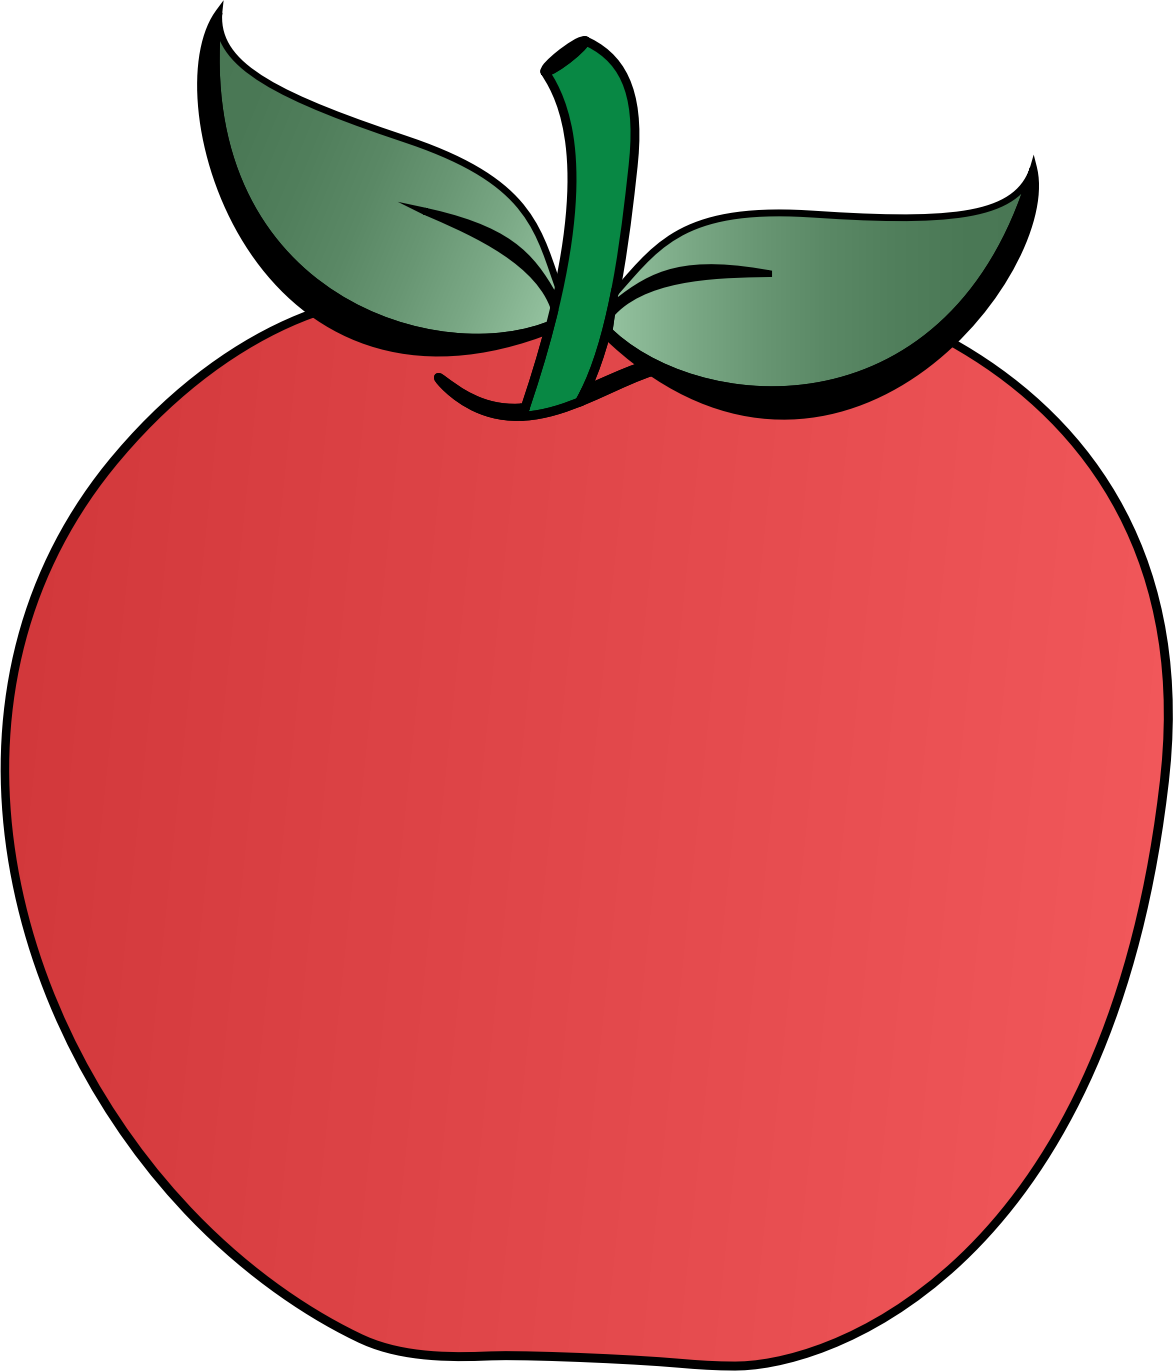 Apple by casino